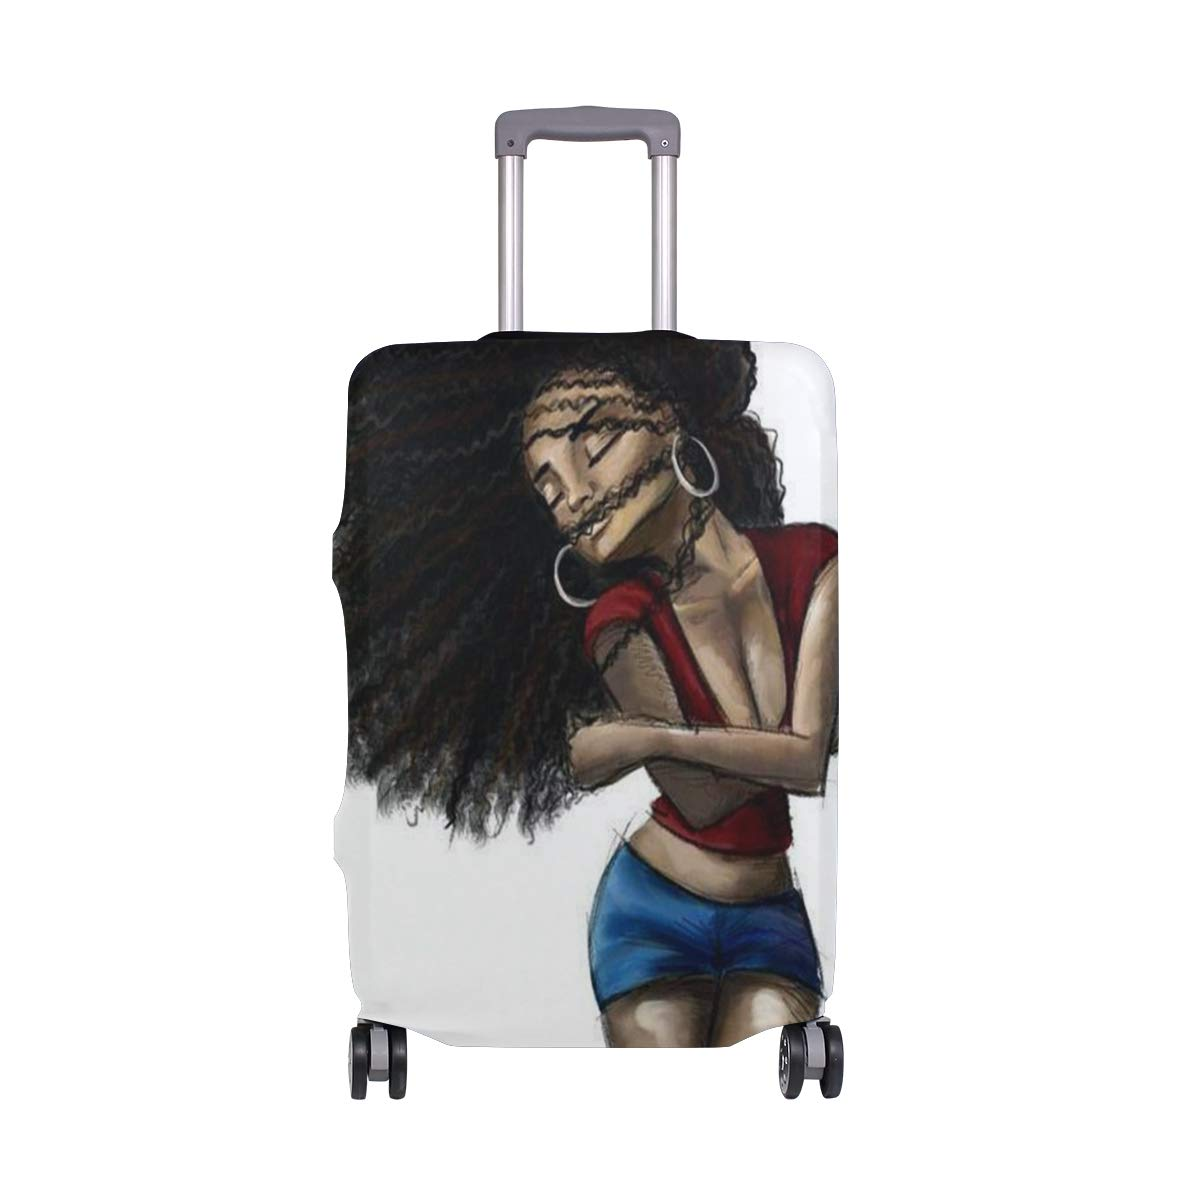 Travel Luggage Cover DIY Prints Protector Suitcase Baggage Fit 18-32 inch - Love Black Hair Art